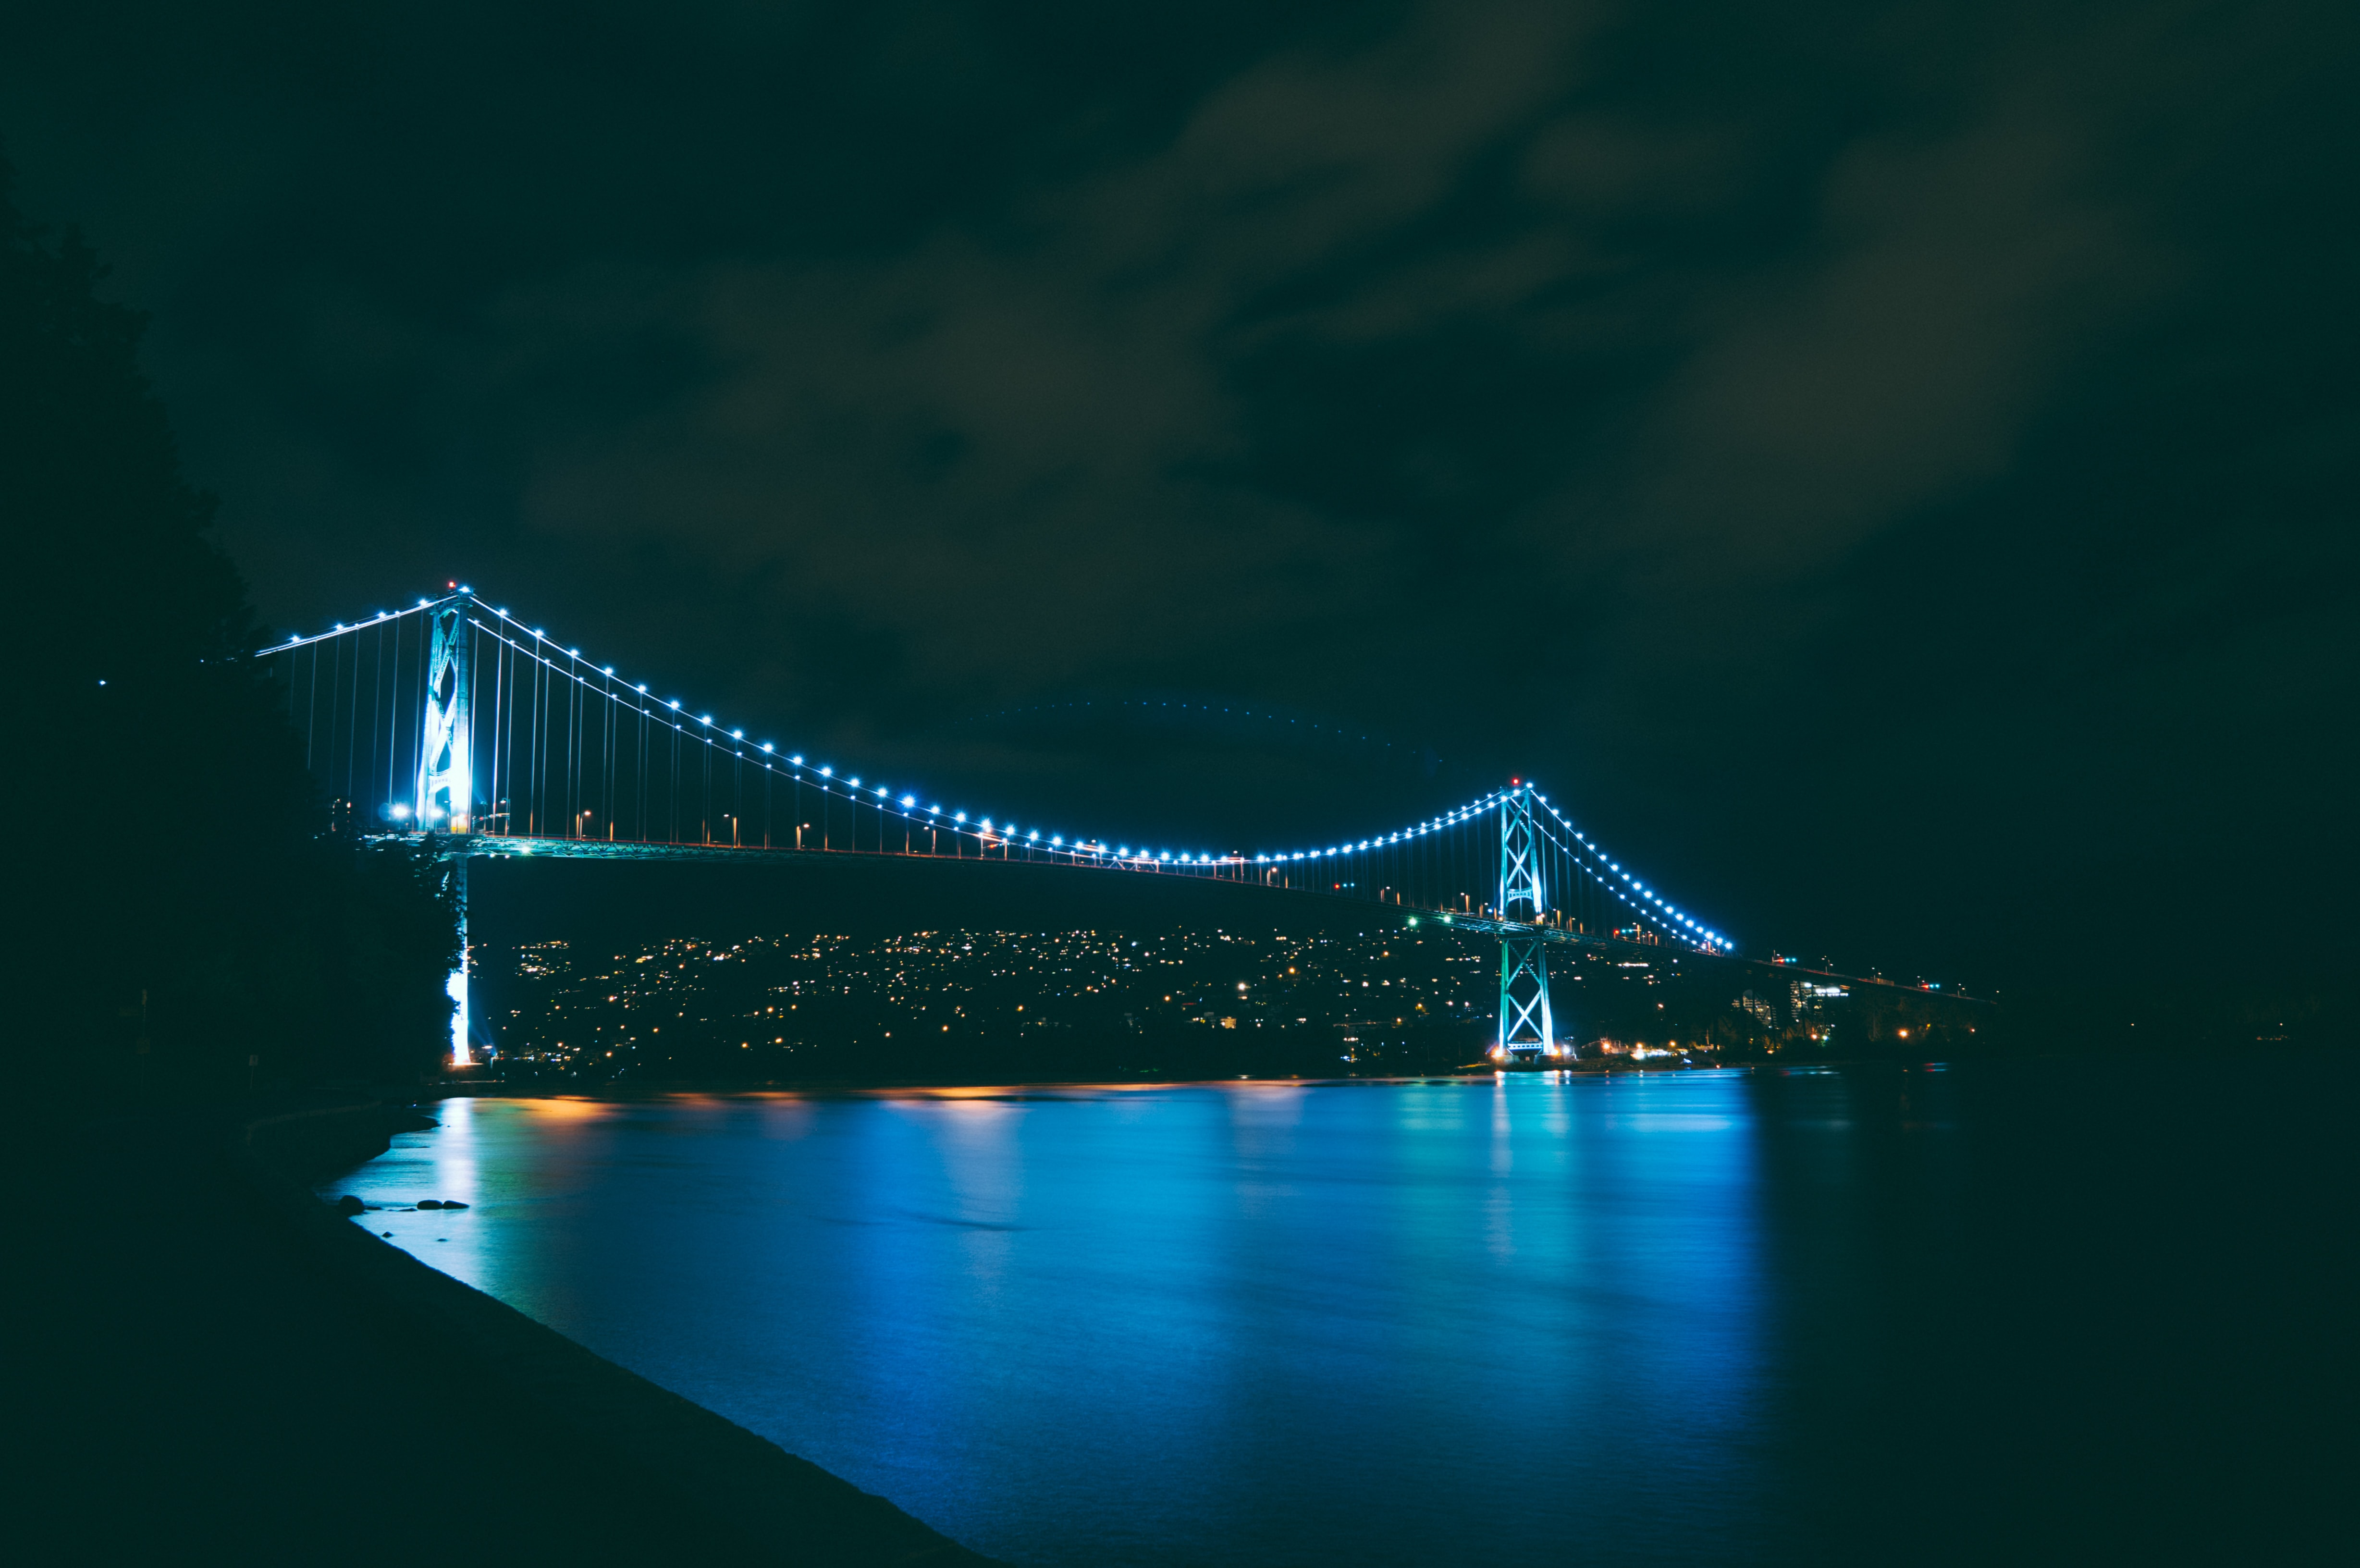 bridge with turned on blue string lights during nighttime